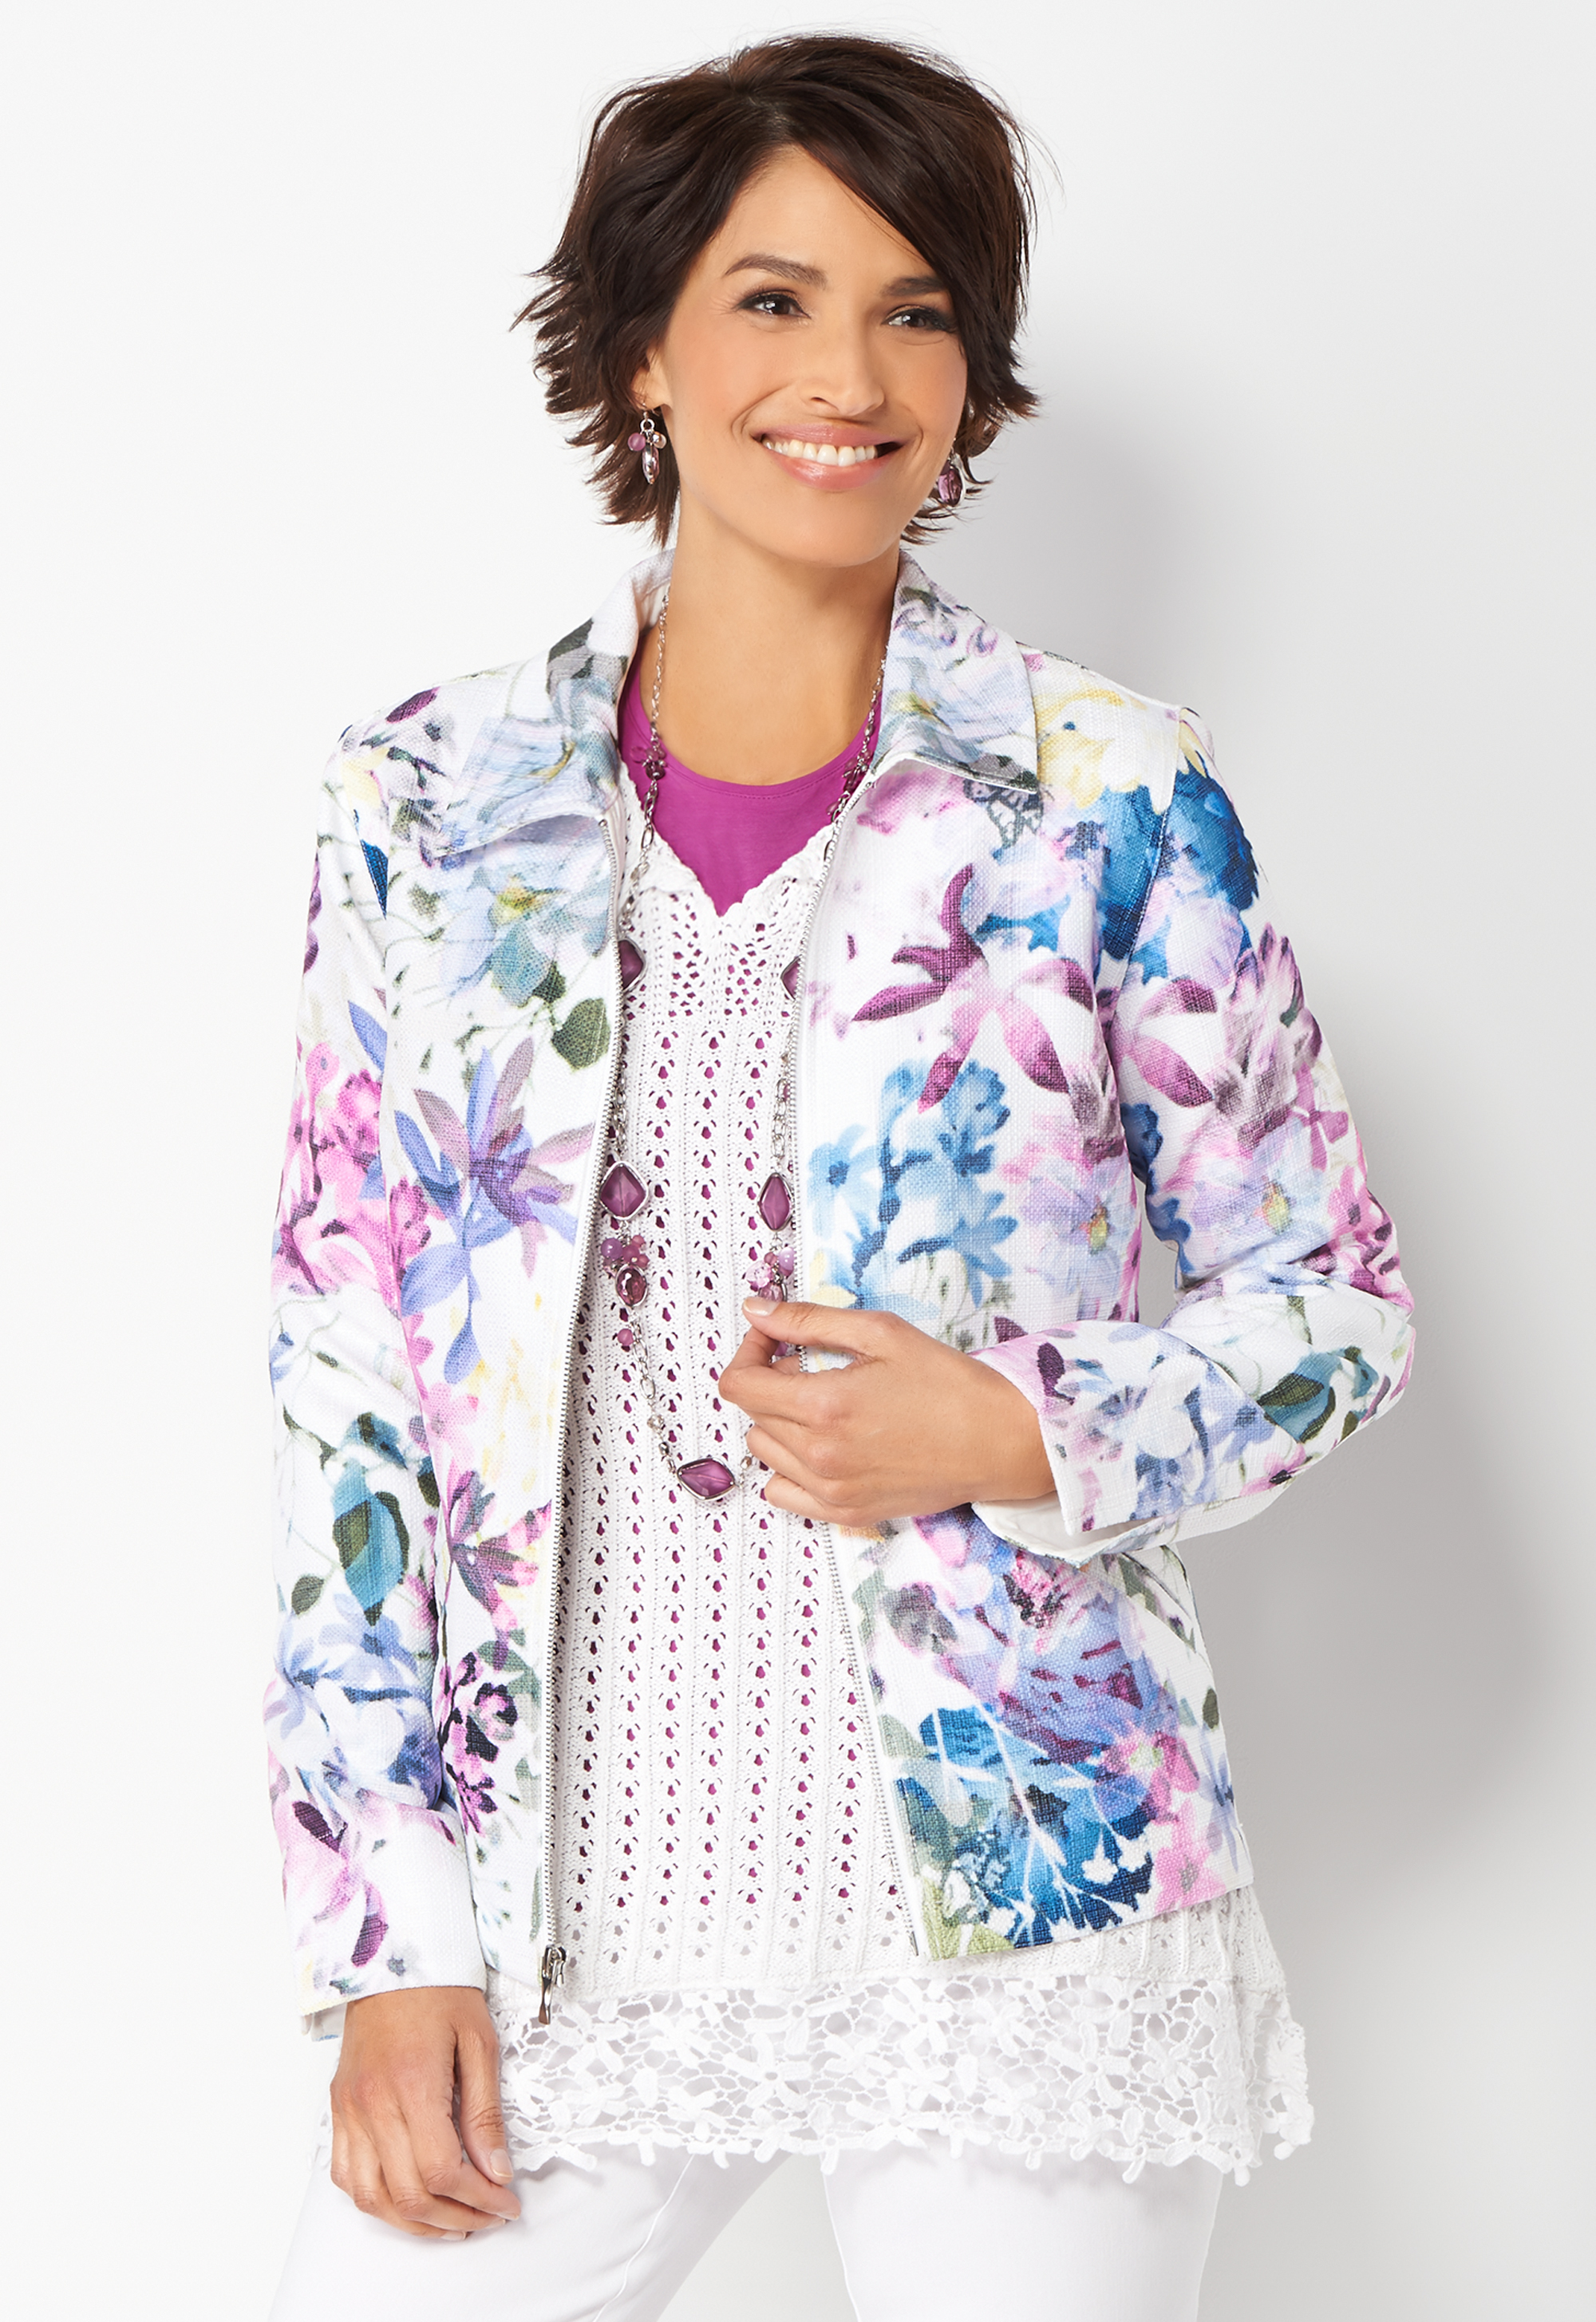 Iconic Floral Jacket - White - Christopher & Banks 0036969431